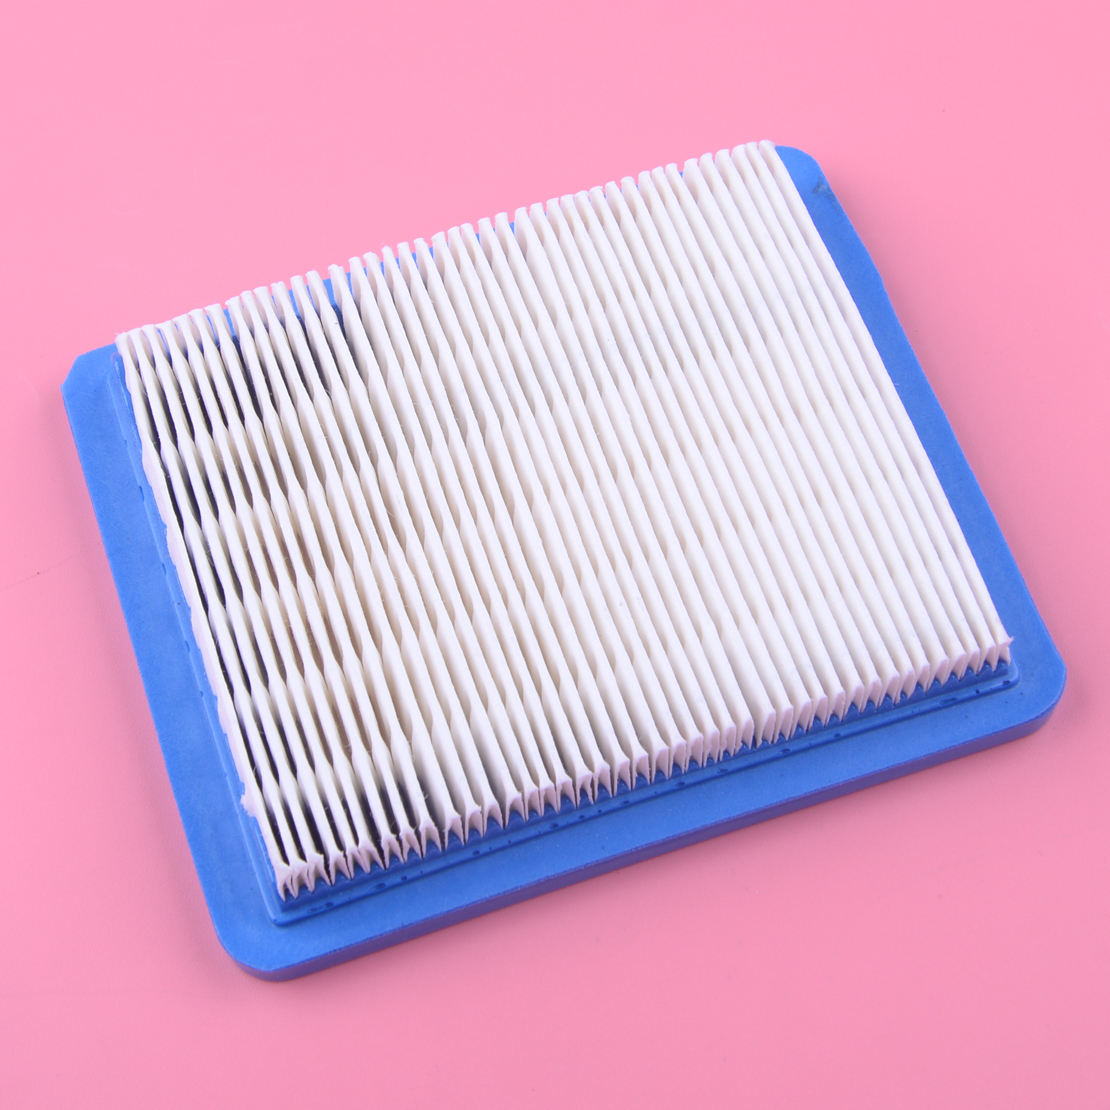 Air Filter Fit For Raftsman 247.37031 For Husqvarna Hu700F Toro 20333 Troy-Bilt Tb240 Mower 491588S 491588